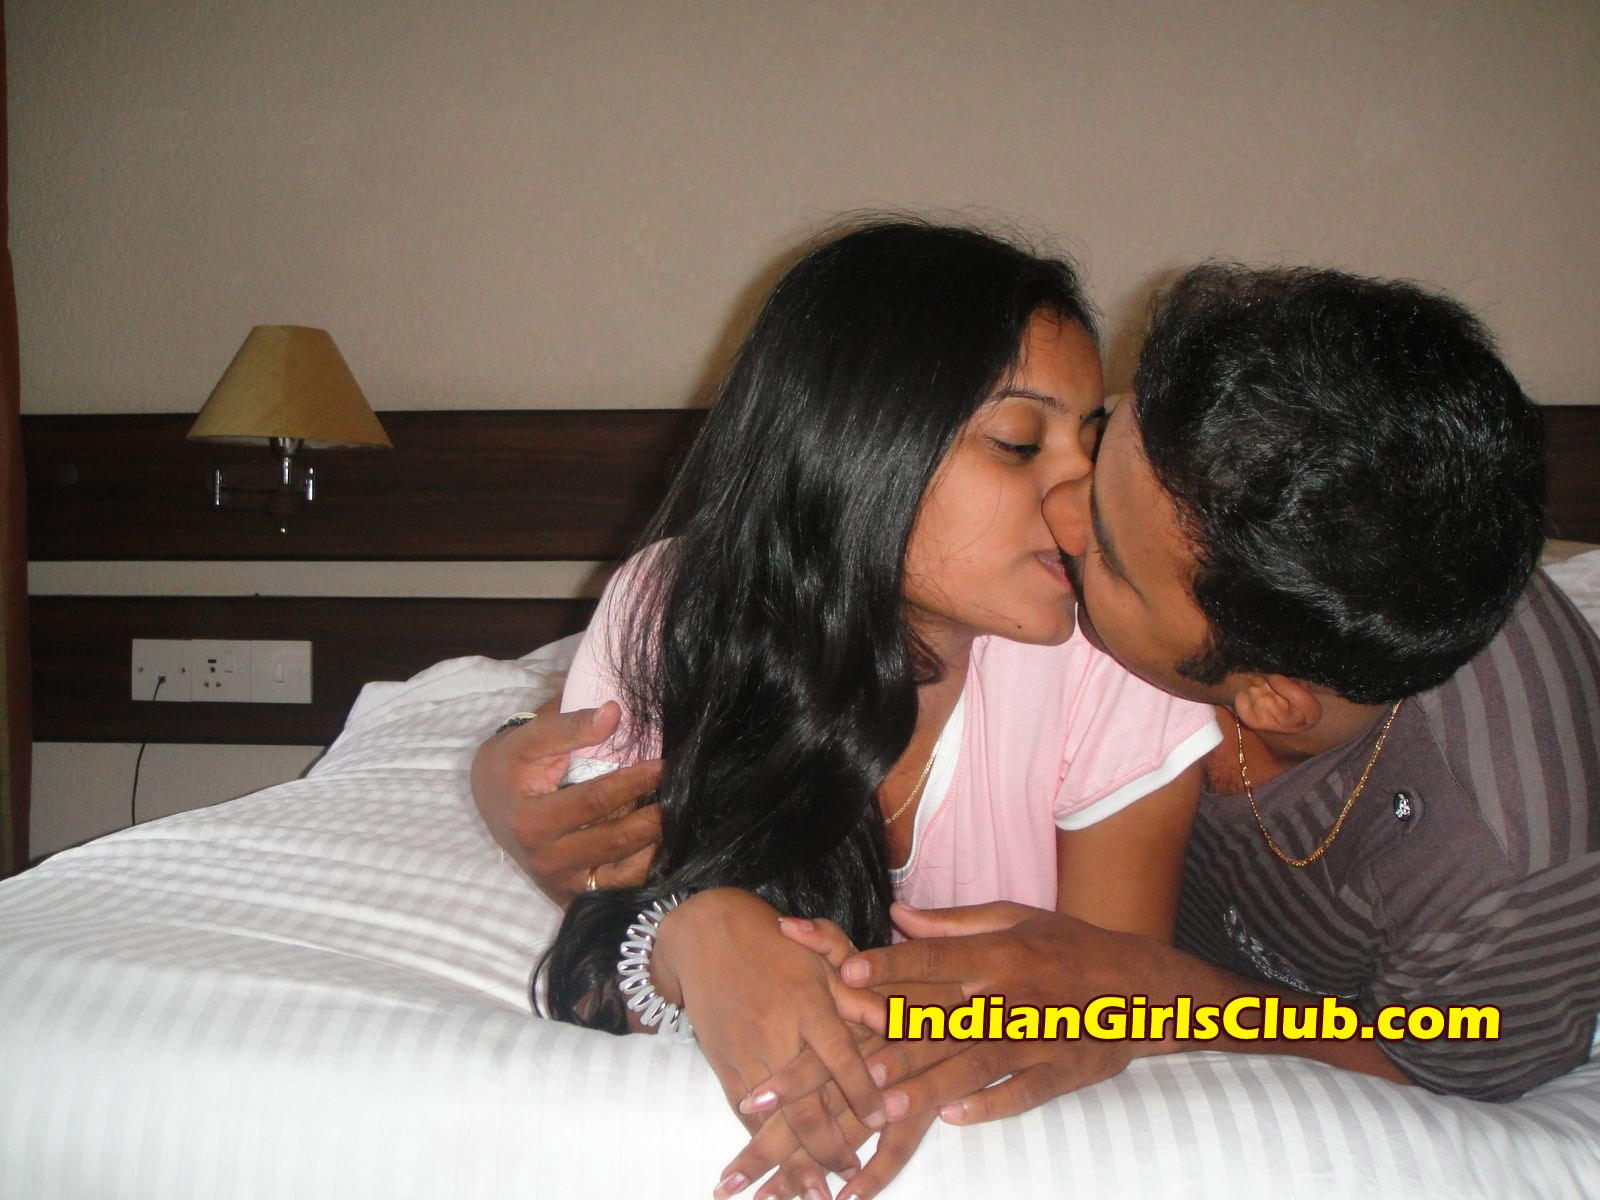 And the tamil sex girl kiss